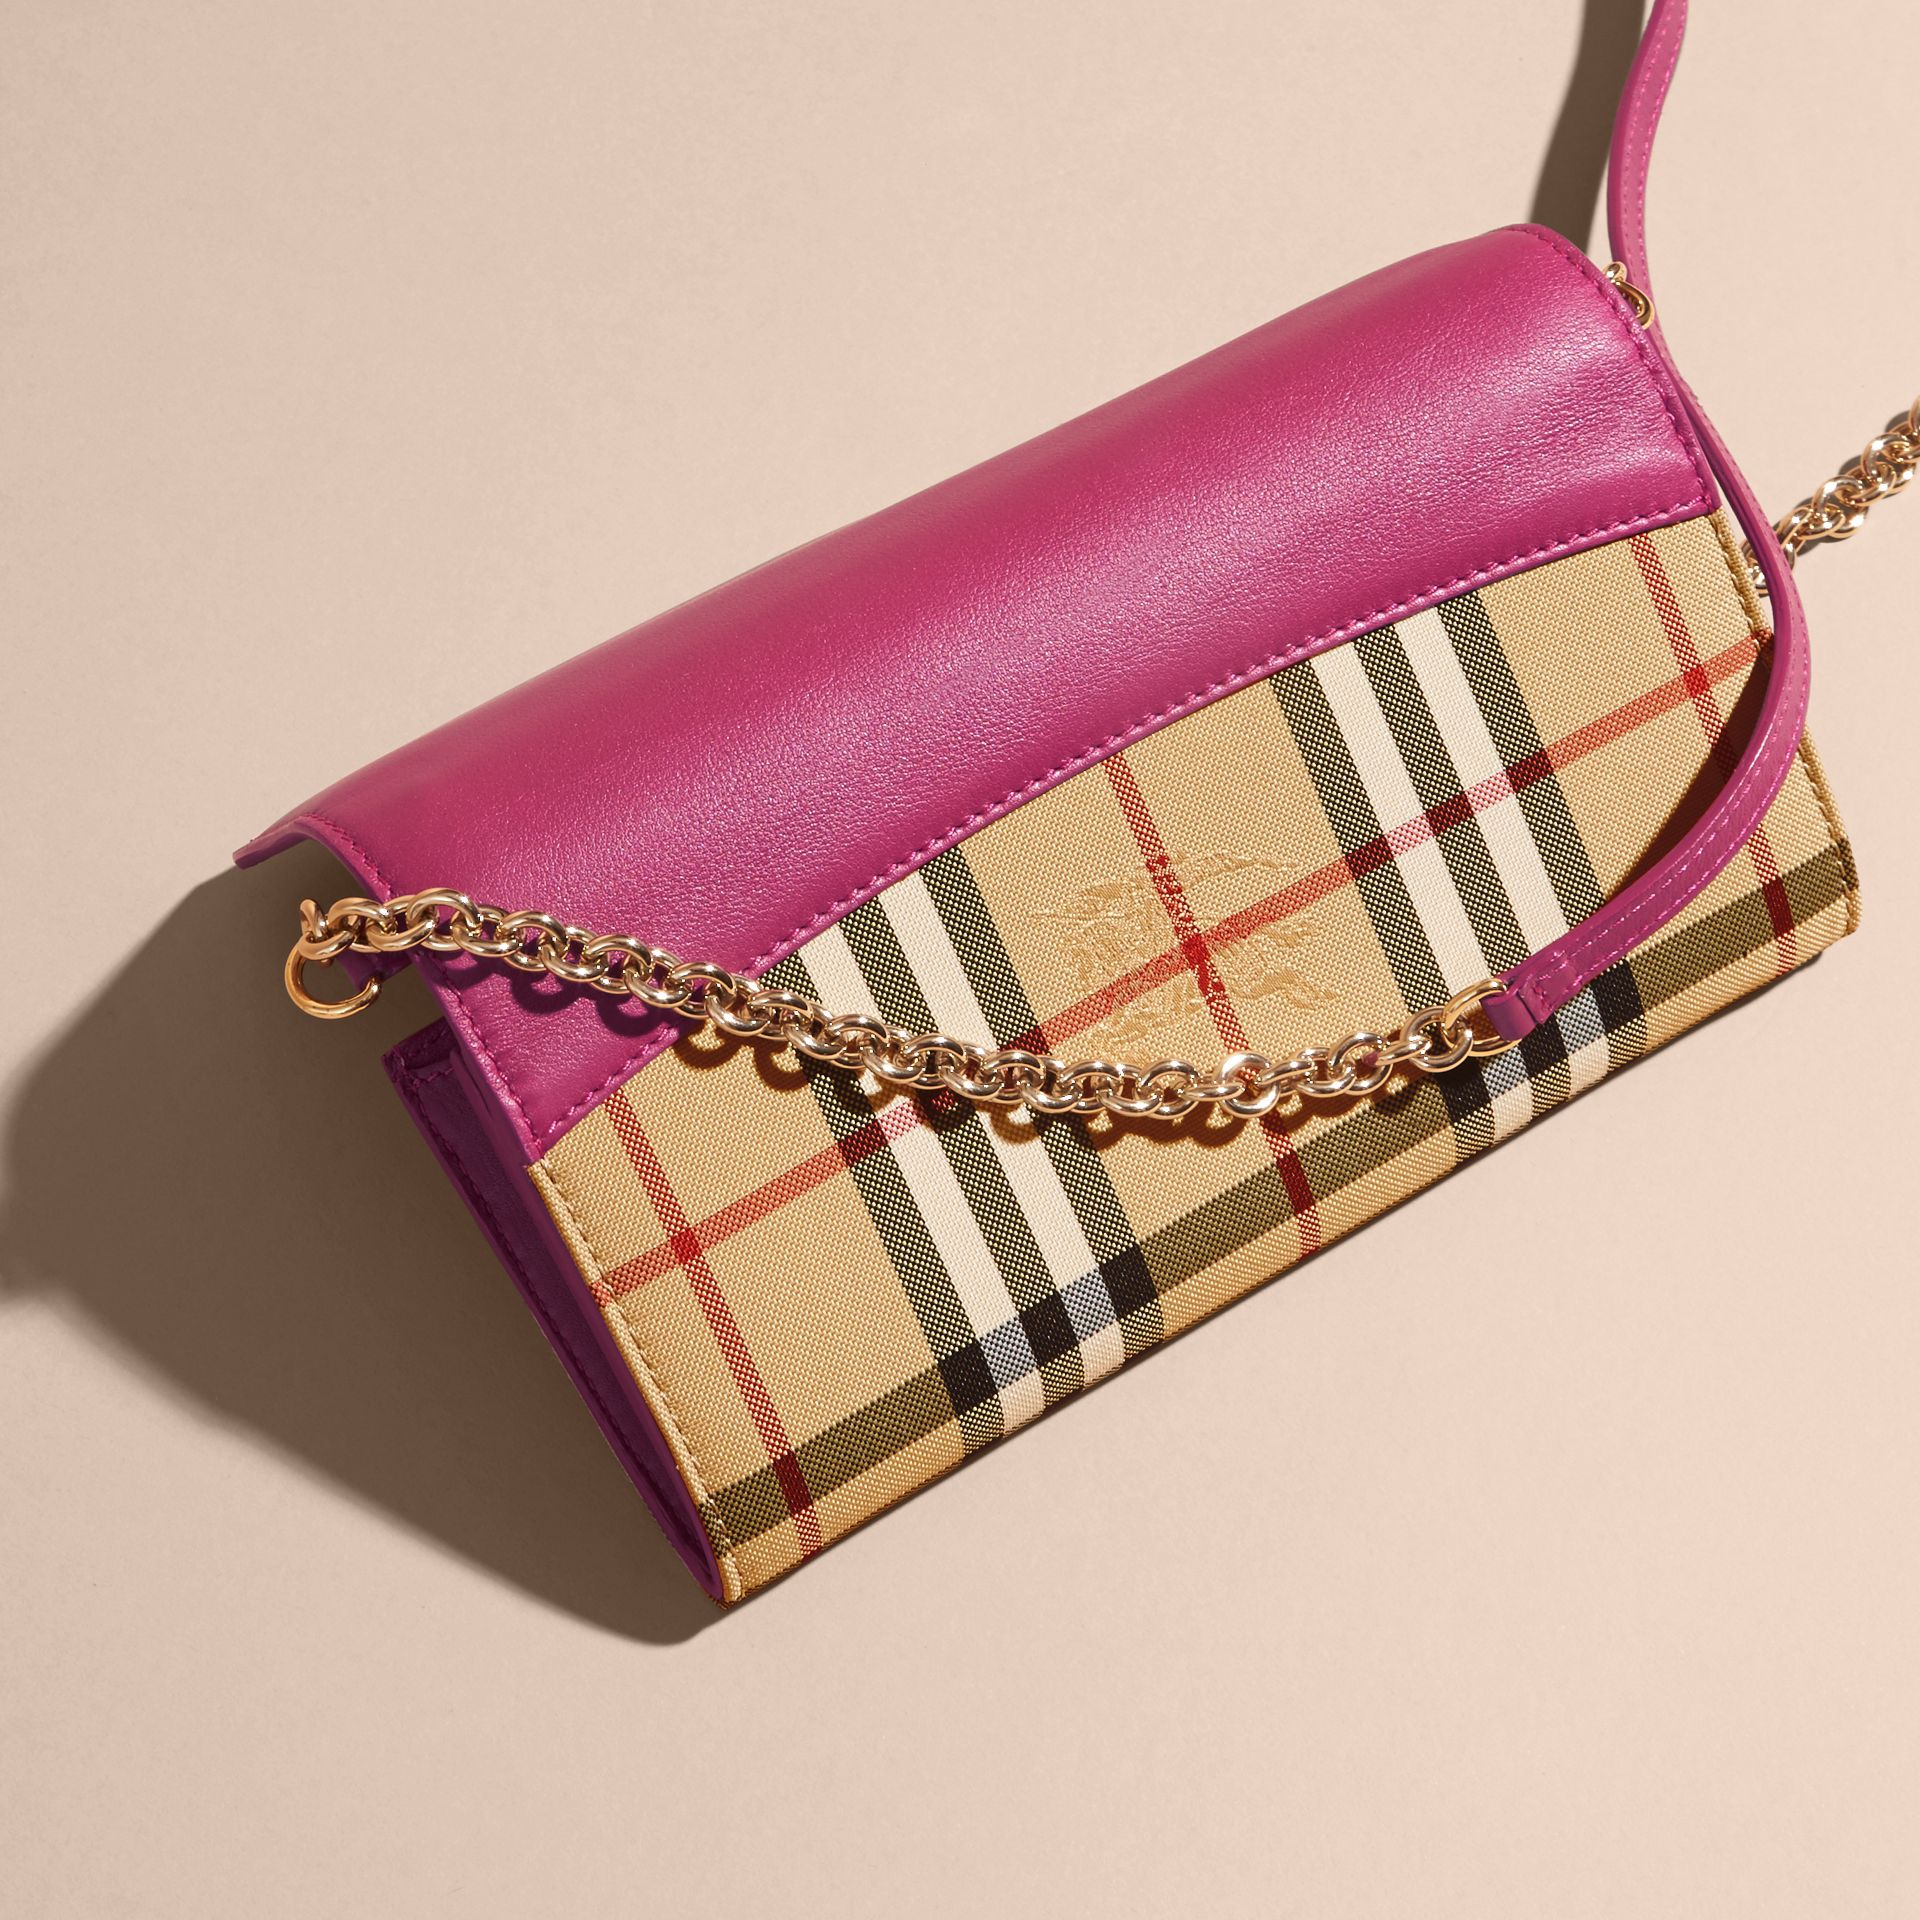 Brilliant fuchsia Horseferry Check and Leather Wallet with Chain Brilliant Fuchsia - gallery image 4